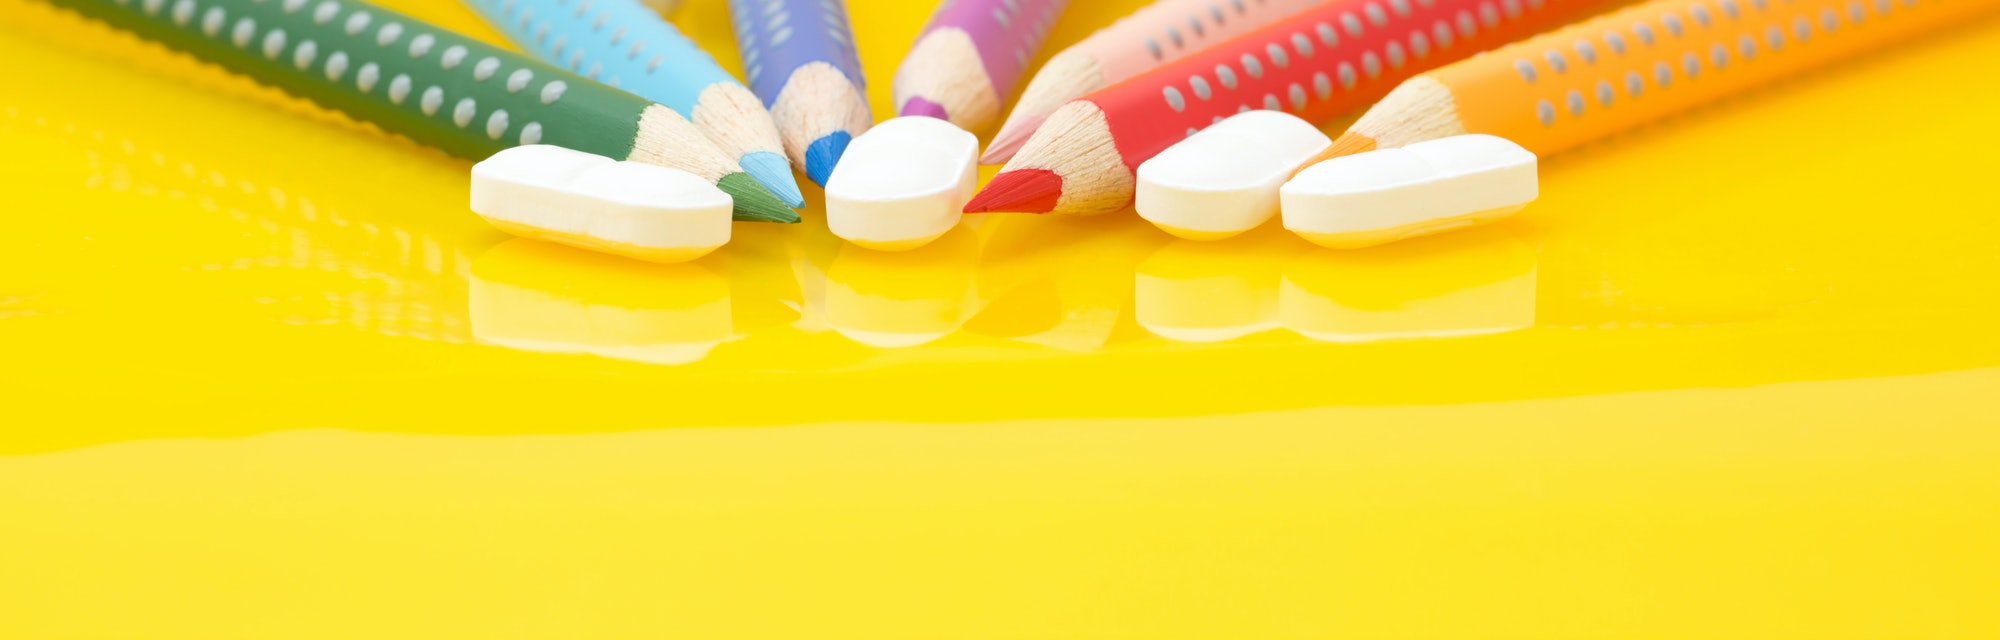 Medication for children concept. Color pencils and drugs on yellow background